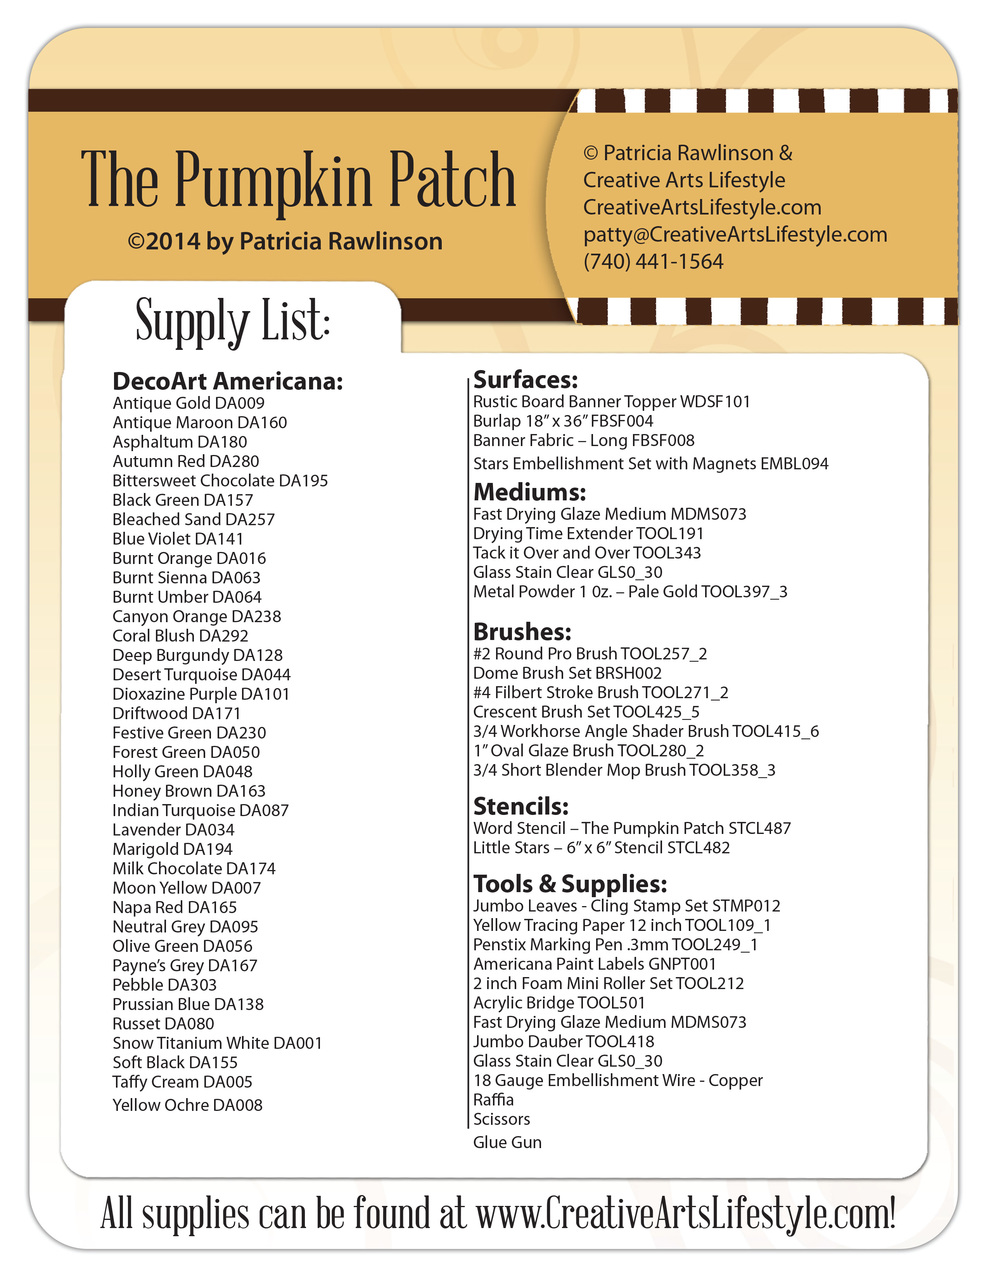 The Pumpkin Patch Pattern Packet - Patricia Rawlinson